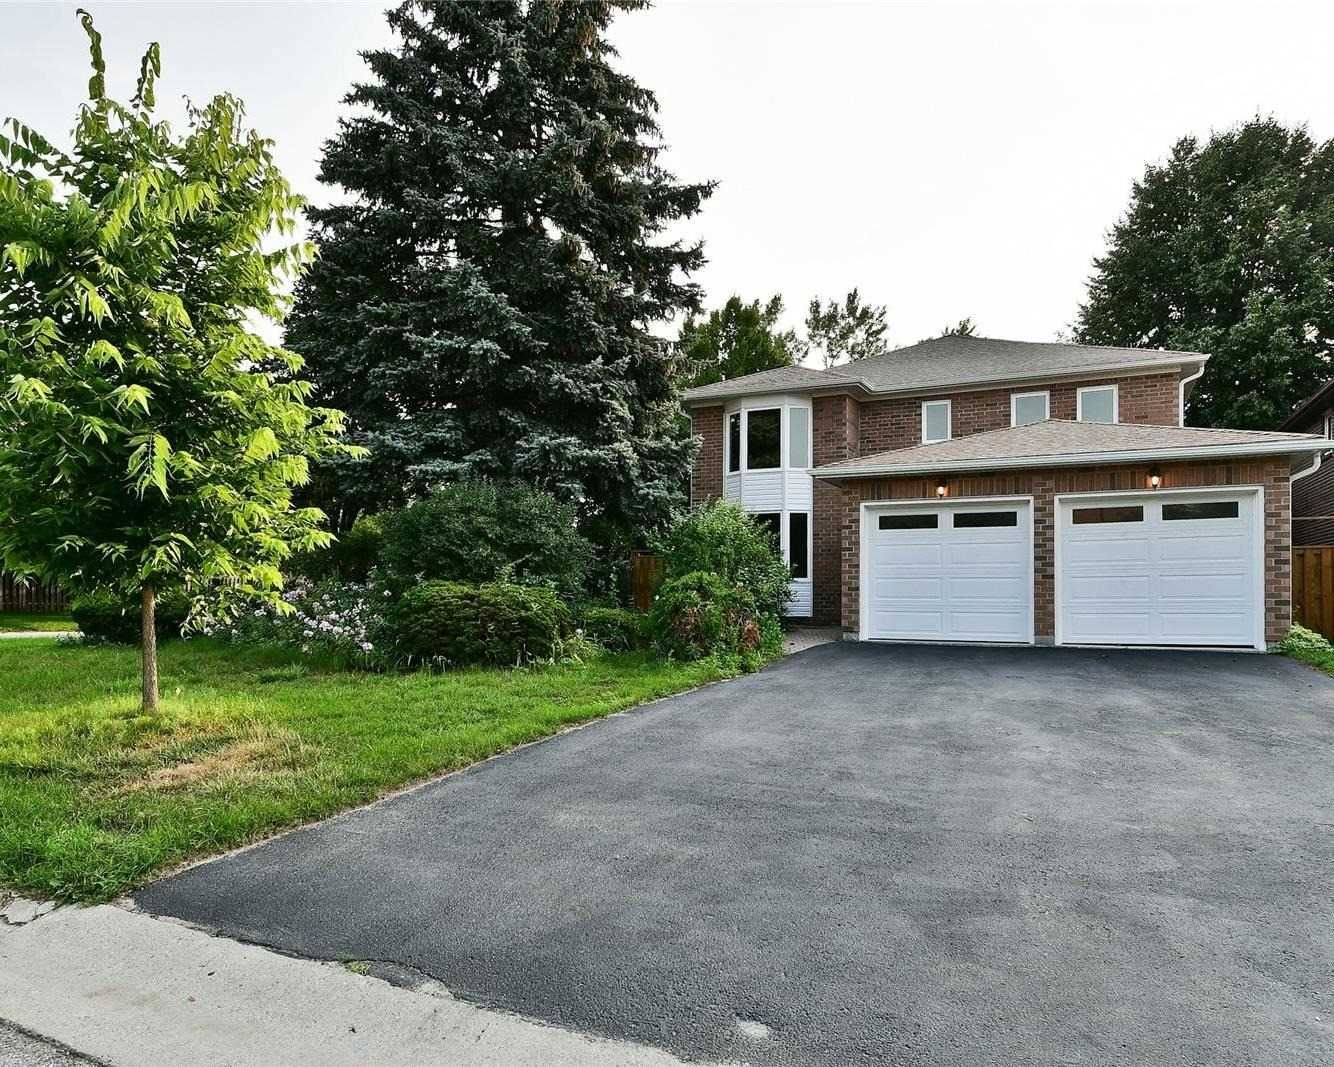 Photo of 1223 Fawndale Rd, Pickering, ON L1V4M4 (MLS # E5319695)